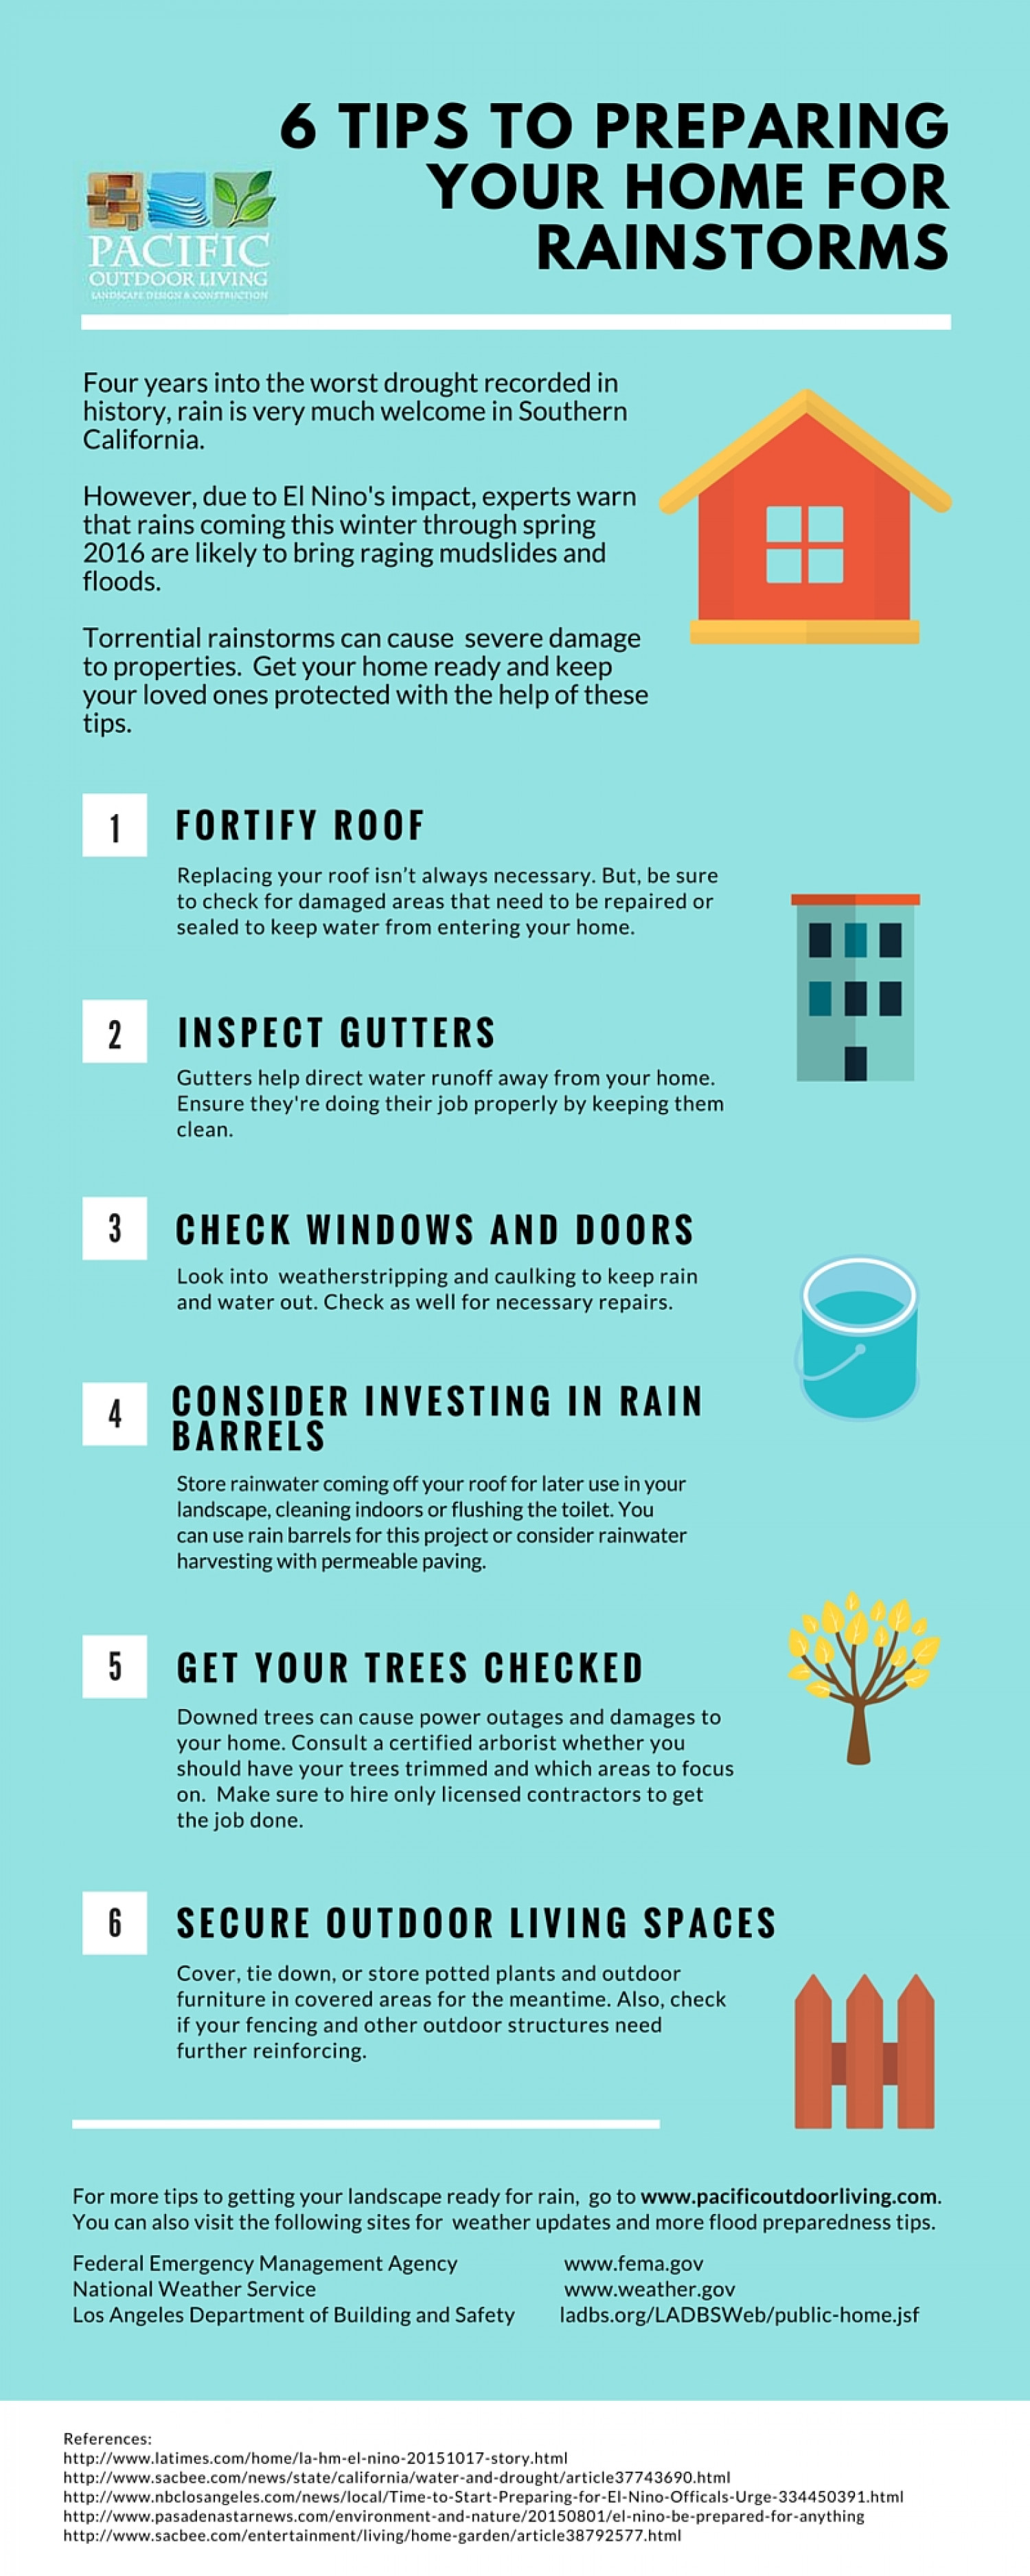 Tips to Preparing Your Home for Rainstorms Infographic